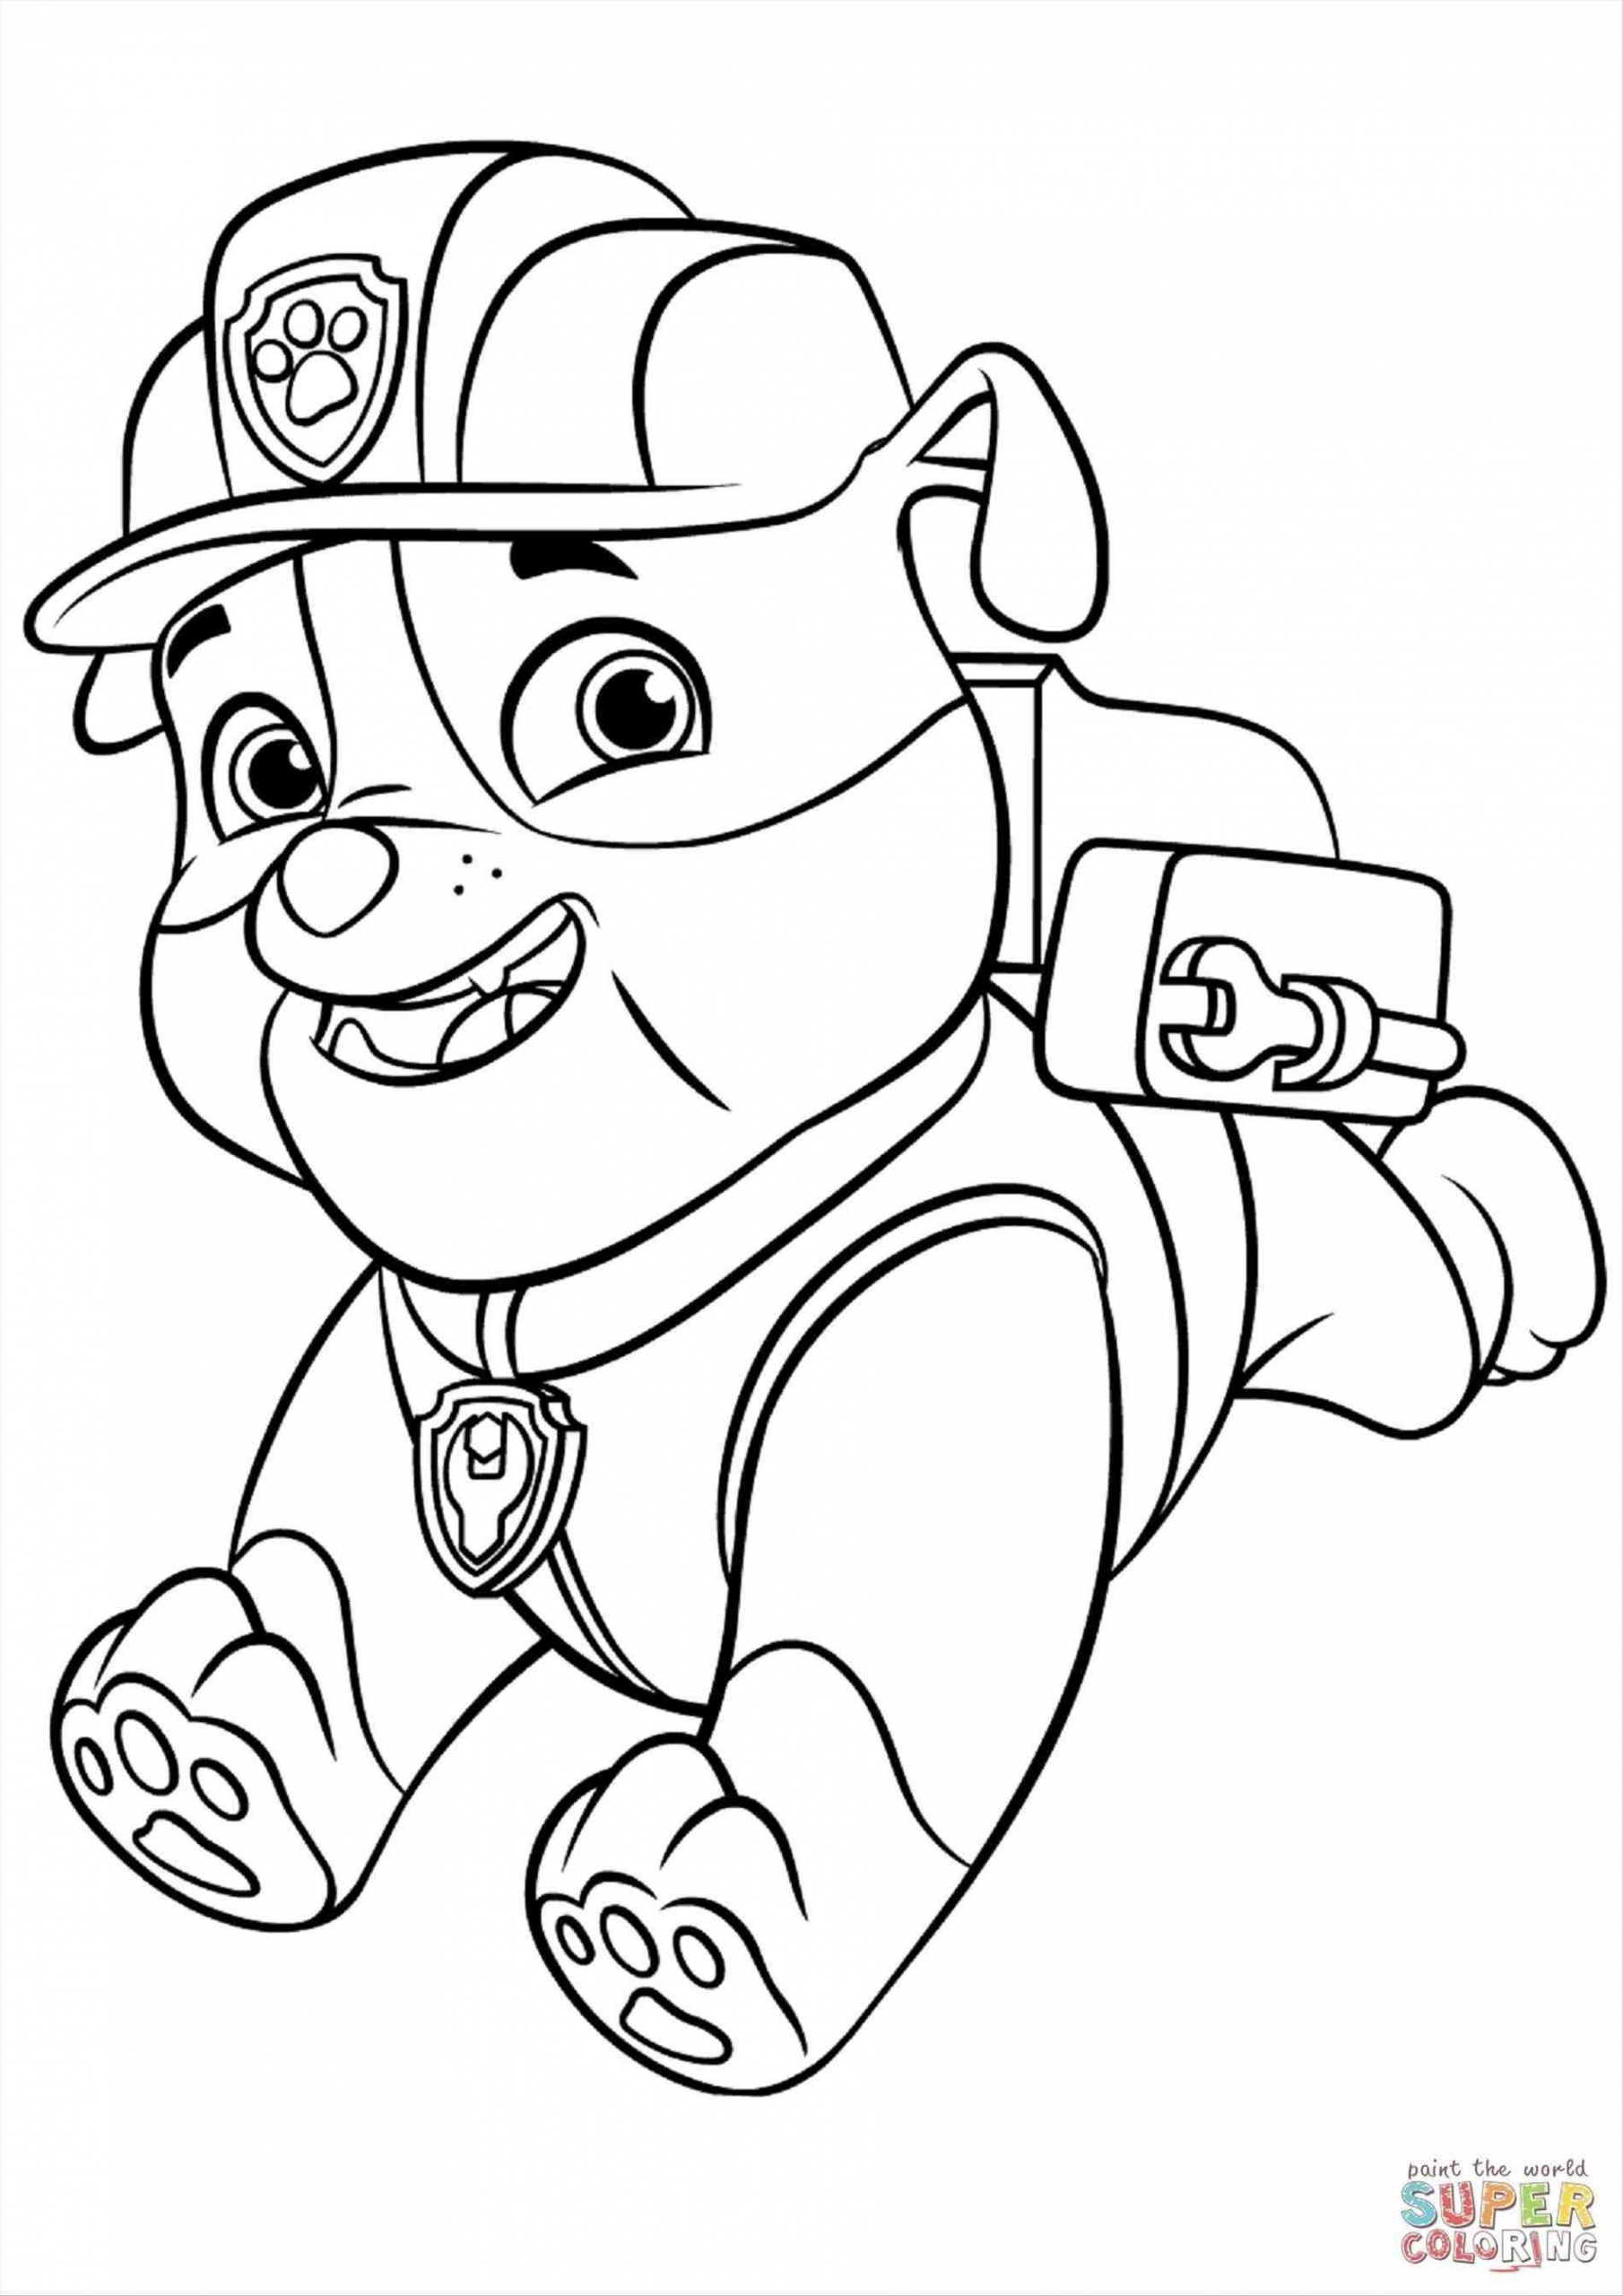 Rubble Paw Patrol Coloring Page Youngandtae Com In 2020 Paw Patrol Coloring Pages Paw Patrol Coloring Paw Patrol Printables